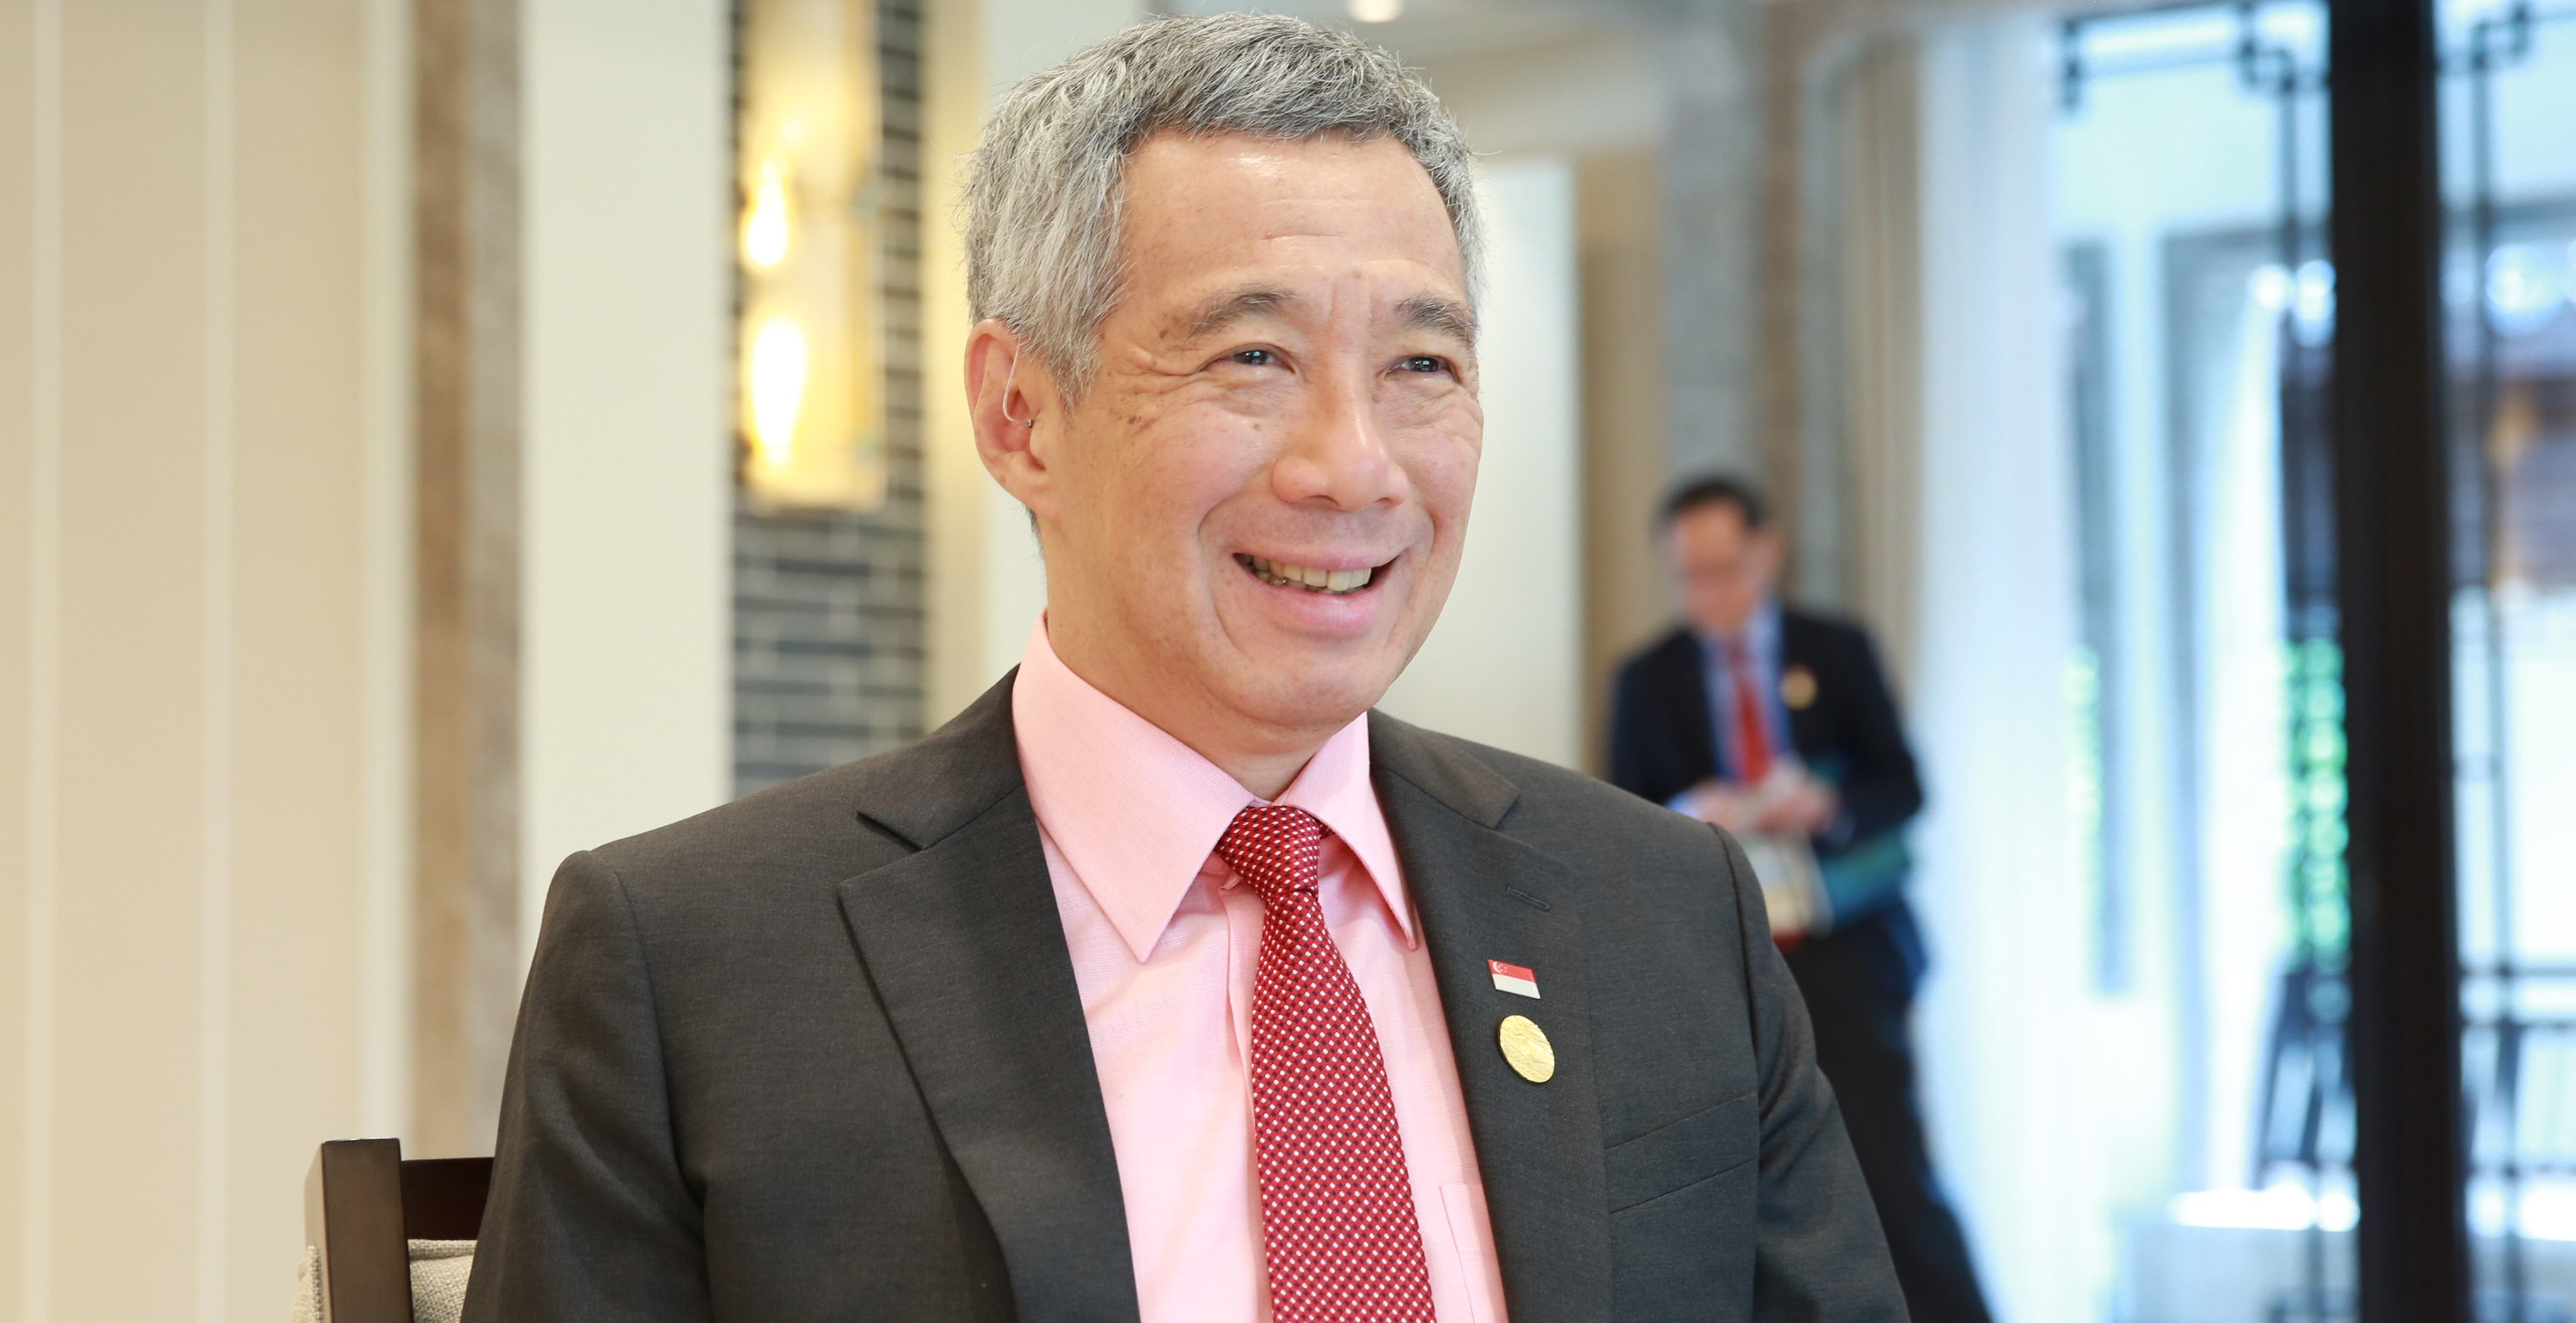 Prime Minister of Singapore Lee Hsien Loong will receive the prestigious 2019 World Statesman Award in New York. Photo courtesy: pmo.gov.sg